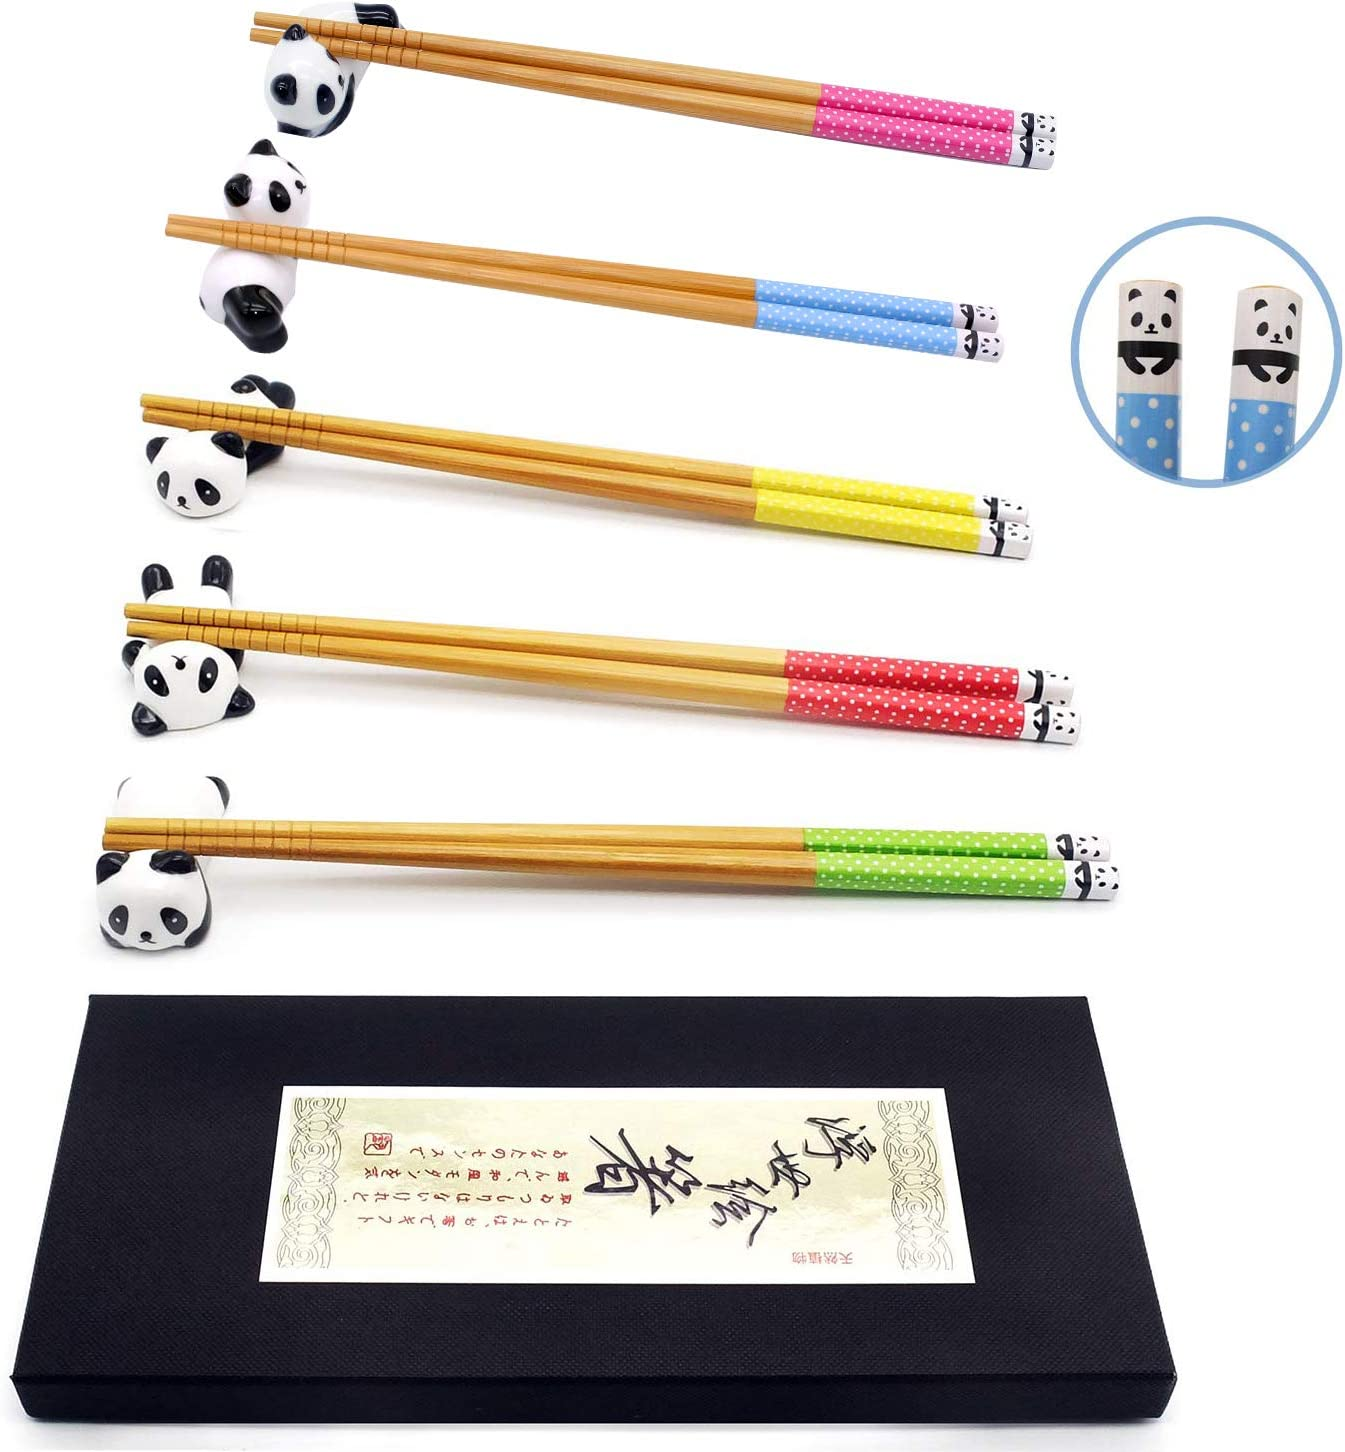 Chopsticks and Chopstick Rest Set, Cute Panda Chopsticks Holder 5 Pcs, Classic Japanese Style Bamboo Natural Reusable Chopsticks, Dishwasher - Safe, Chopsticks Holder Gift Set 5 Pairs (Panda)